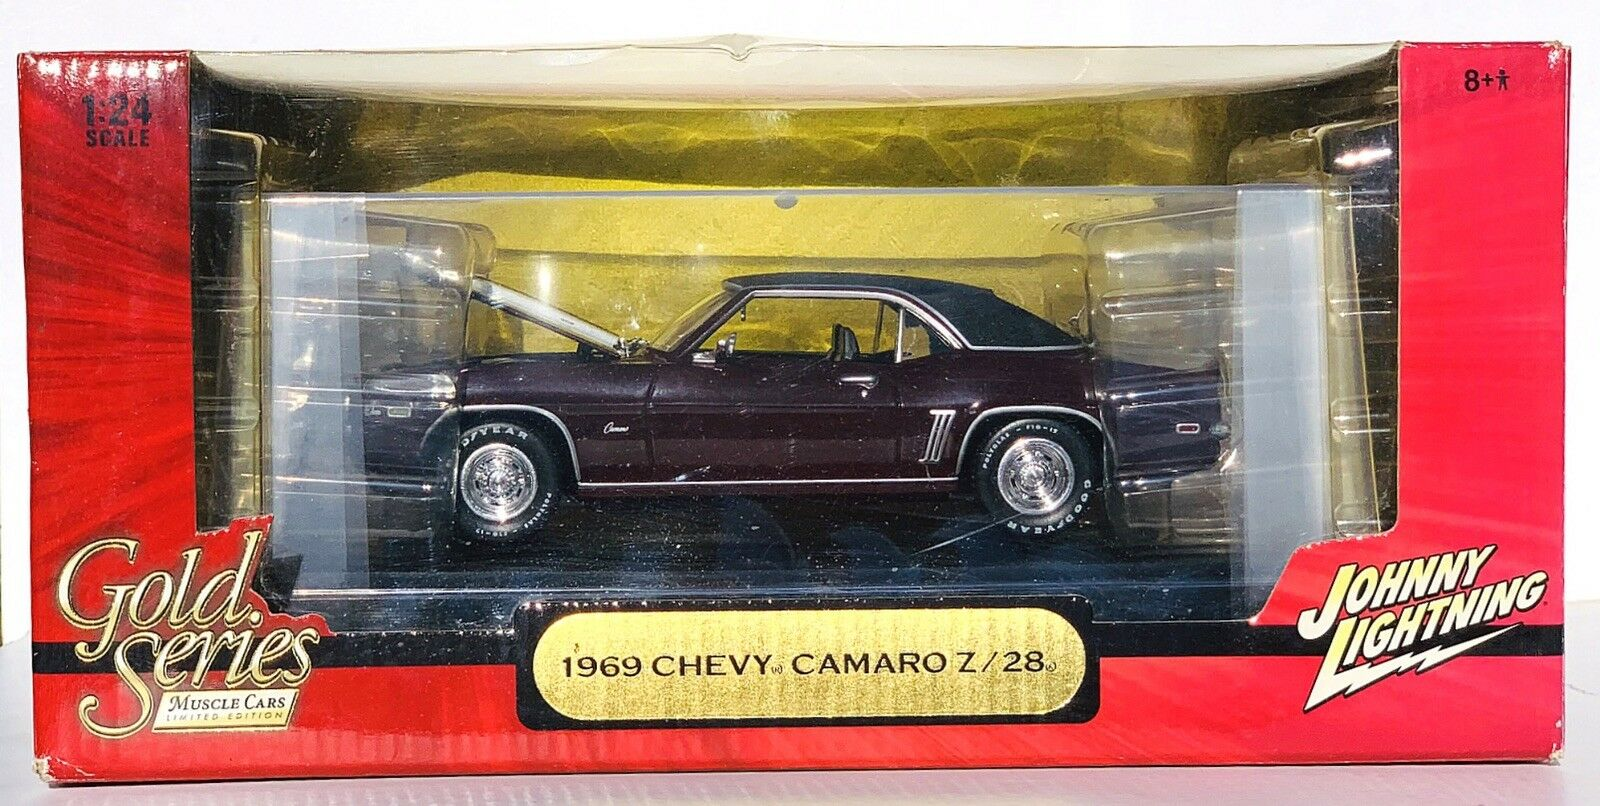 Johnny Lightning 1969 Chevy Camaro Z 28 1 24 Scale or Series